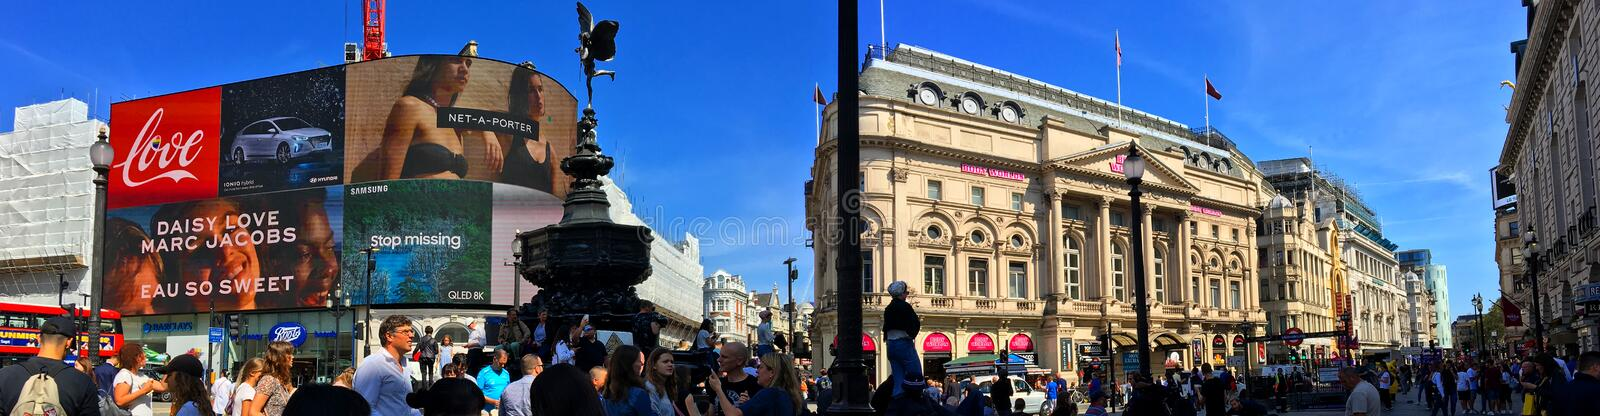 Piccadilly Circus on a summers day stock photos